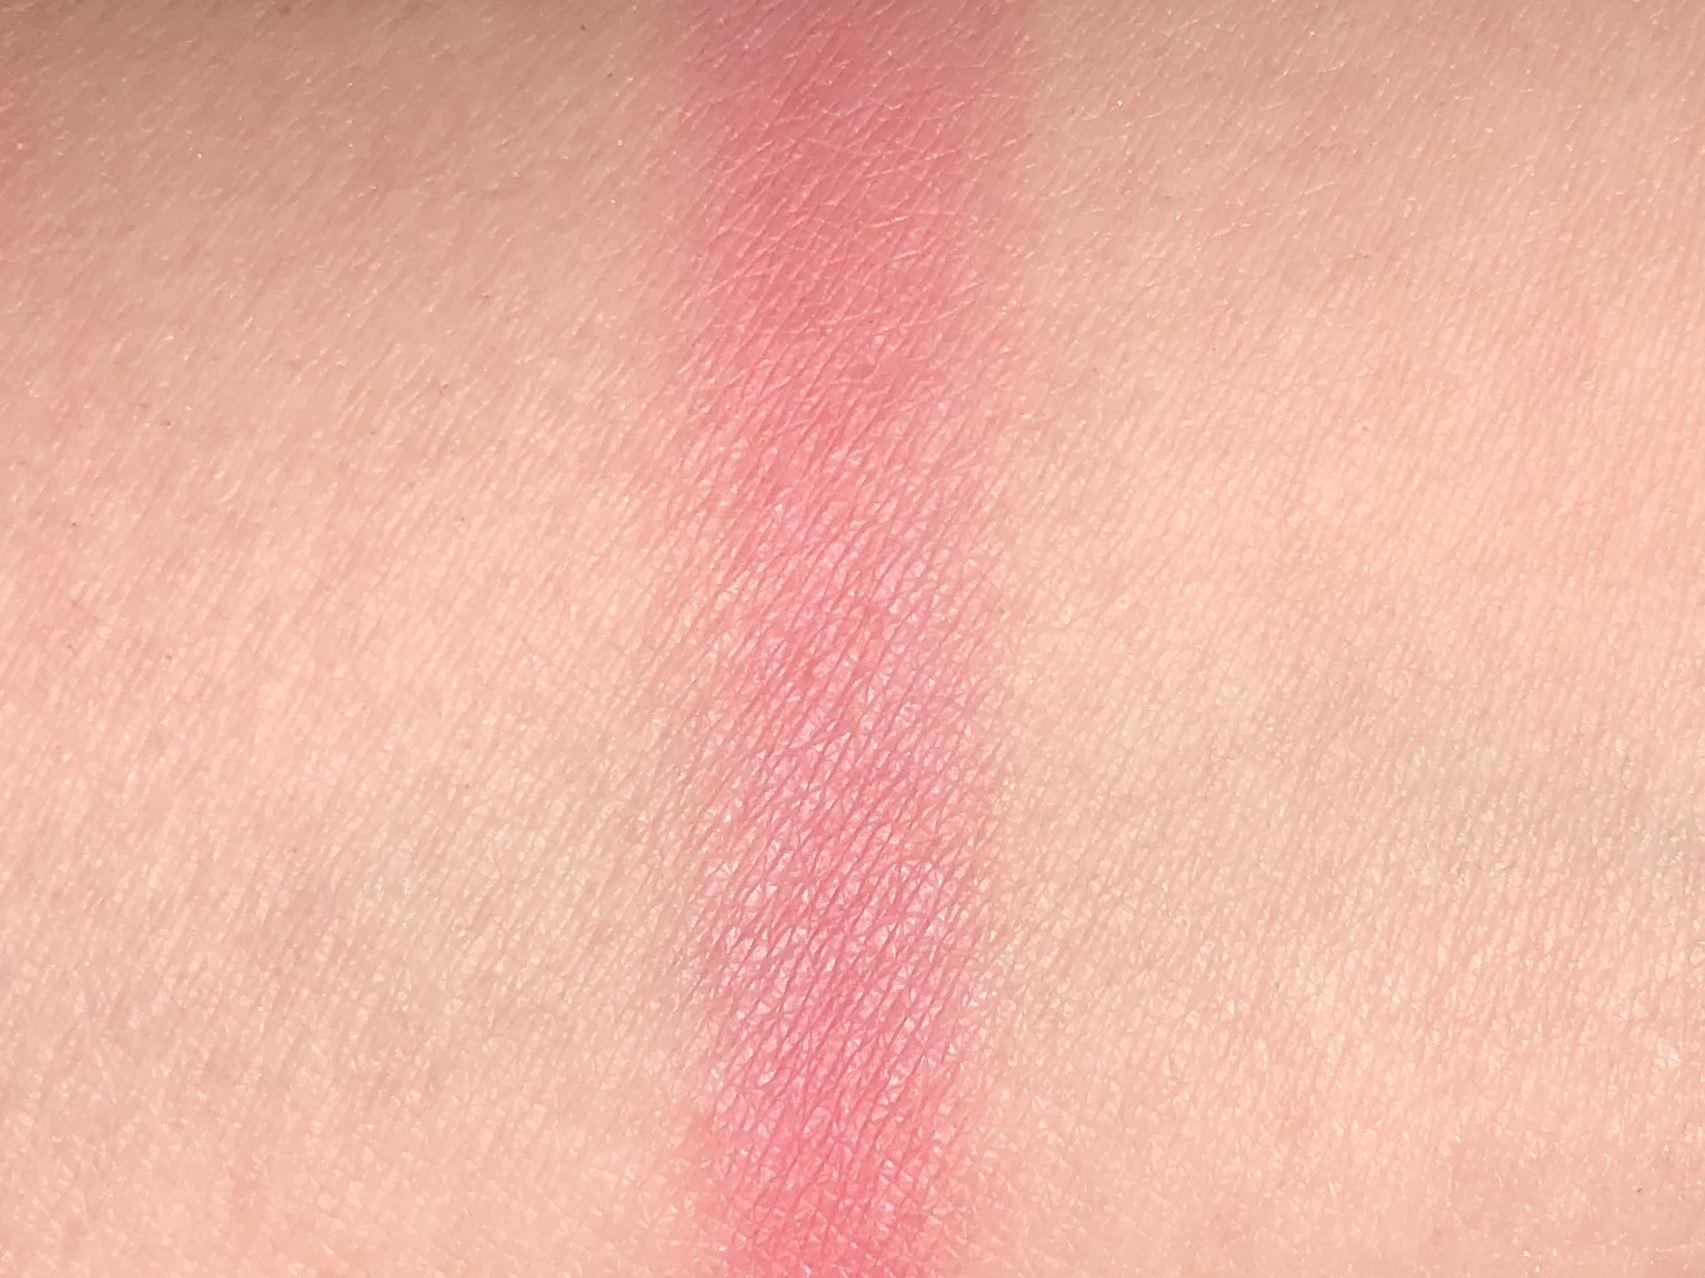 Essence 50 Pink Me Up! Matt Touch Blush Review 4